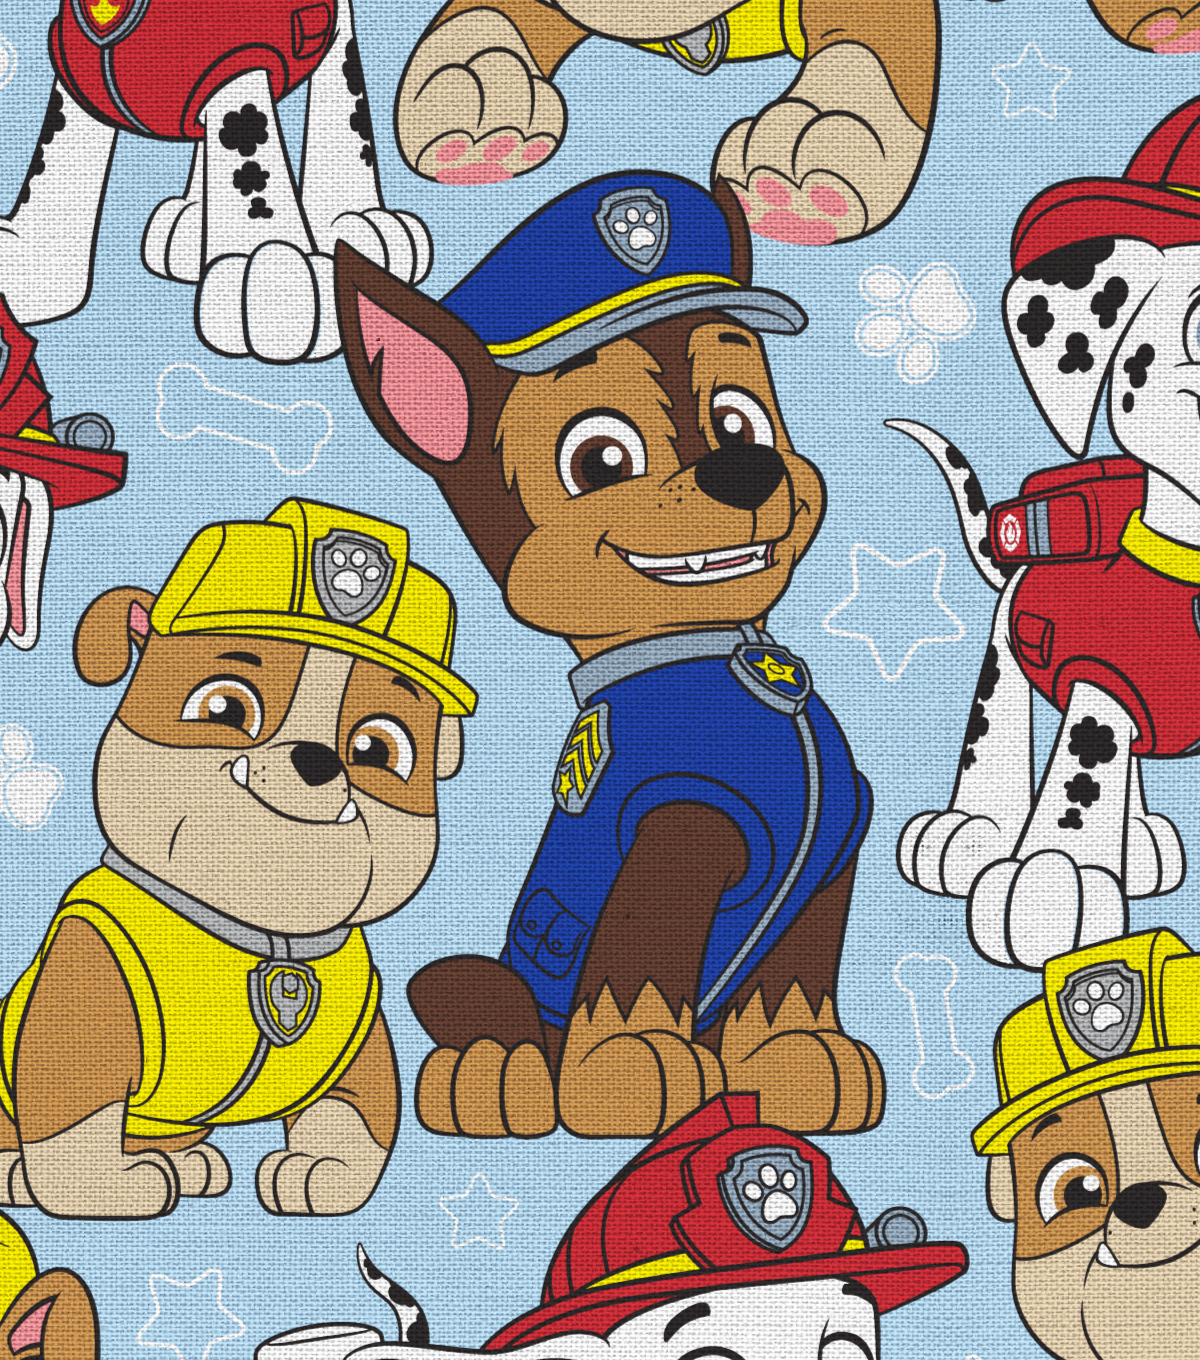 Nick Junior Paw Patrol Cotton Fabric -Packed on Blue